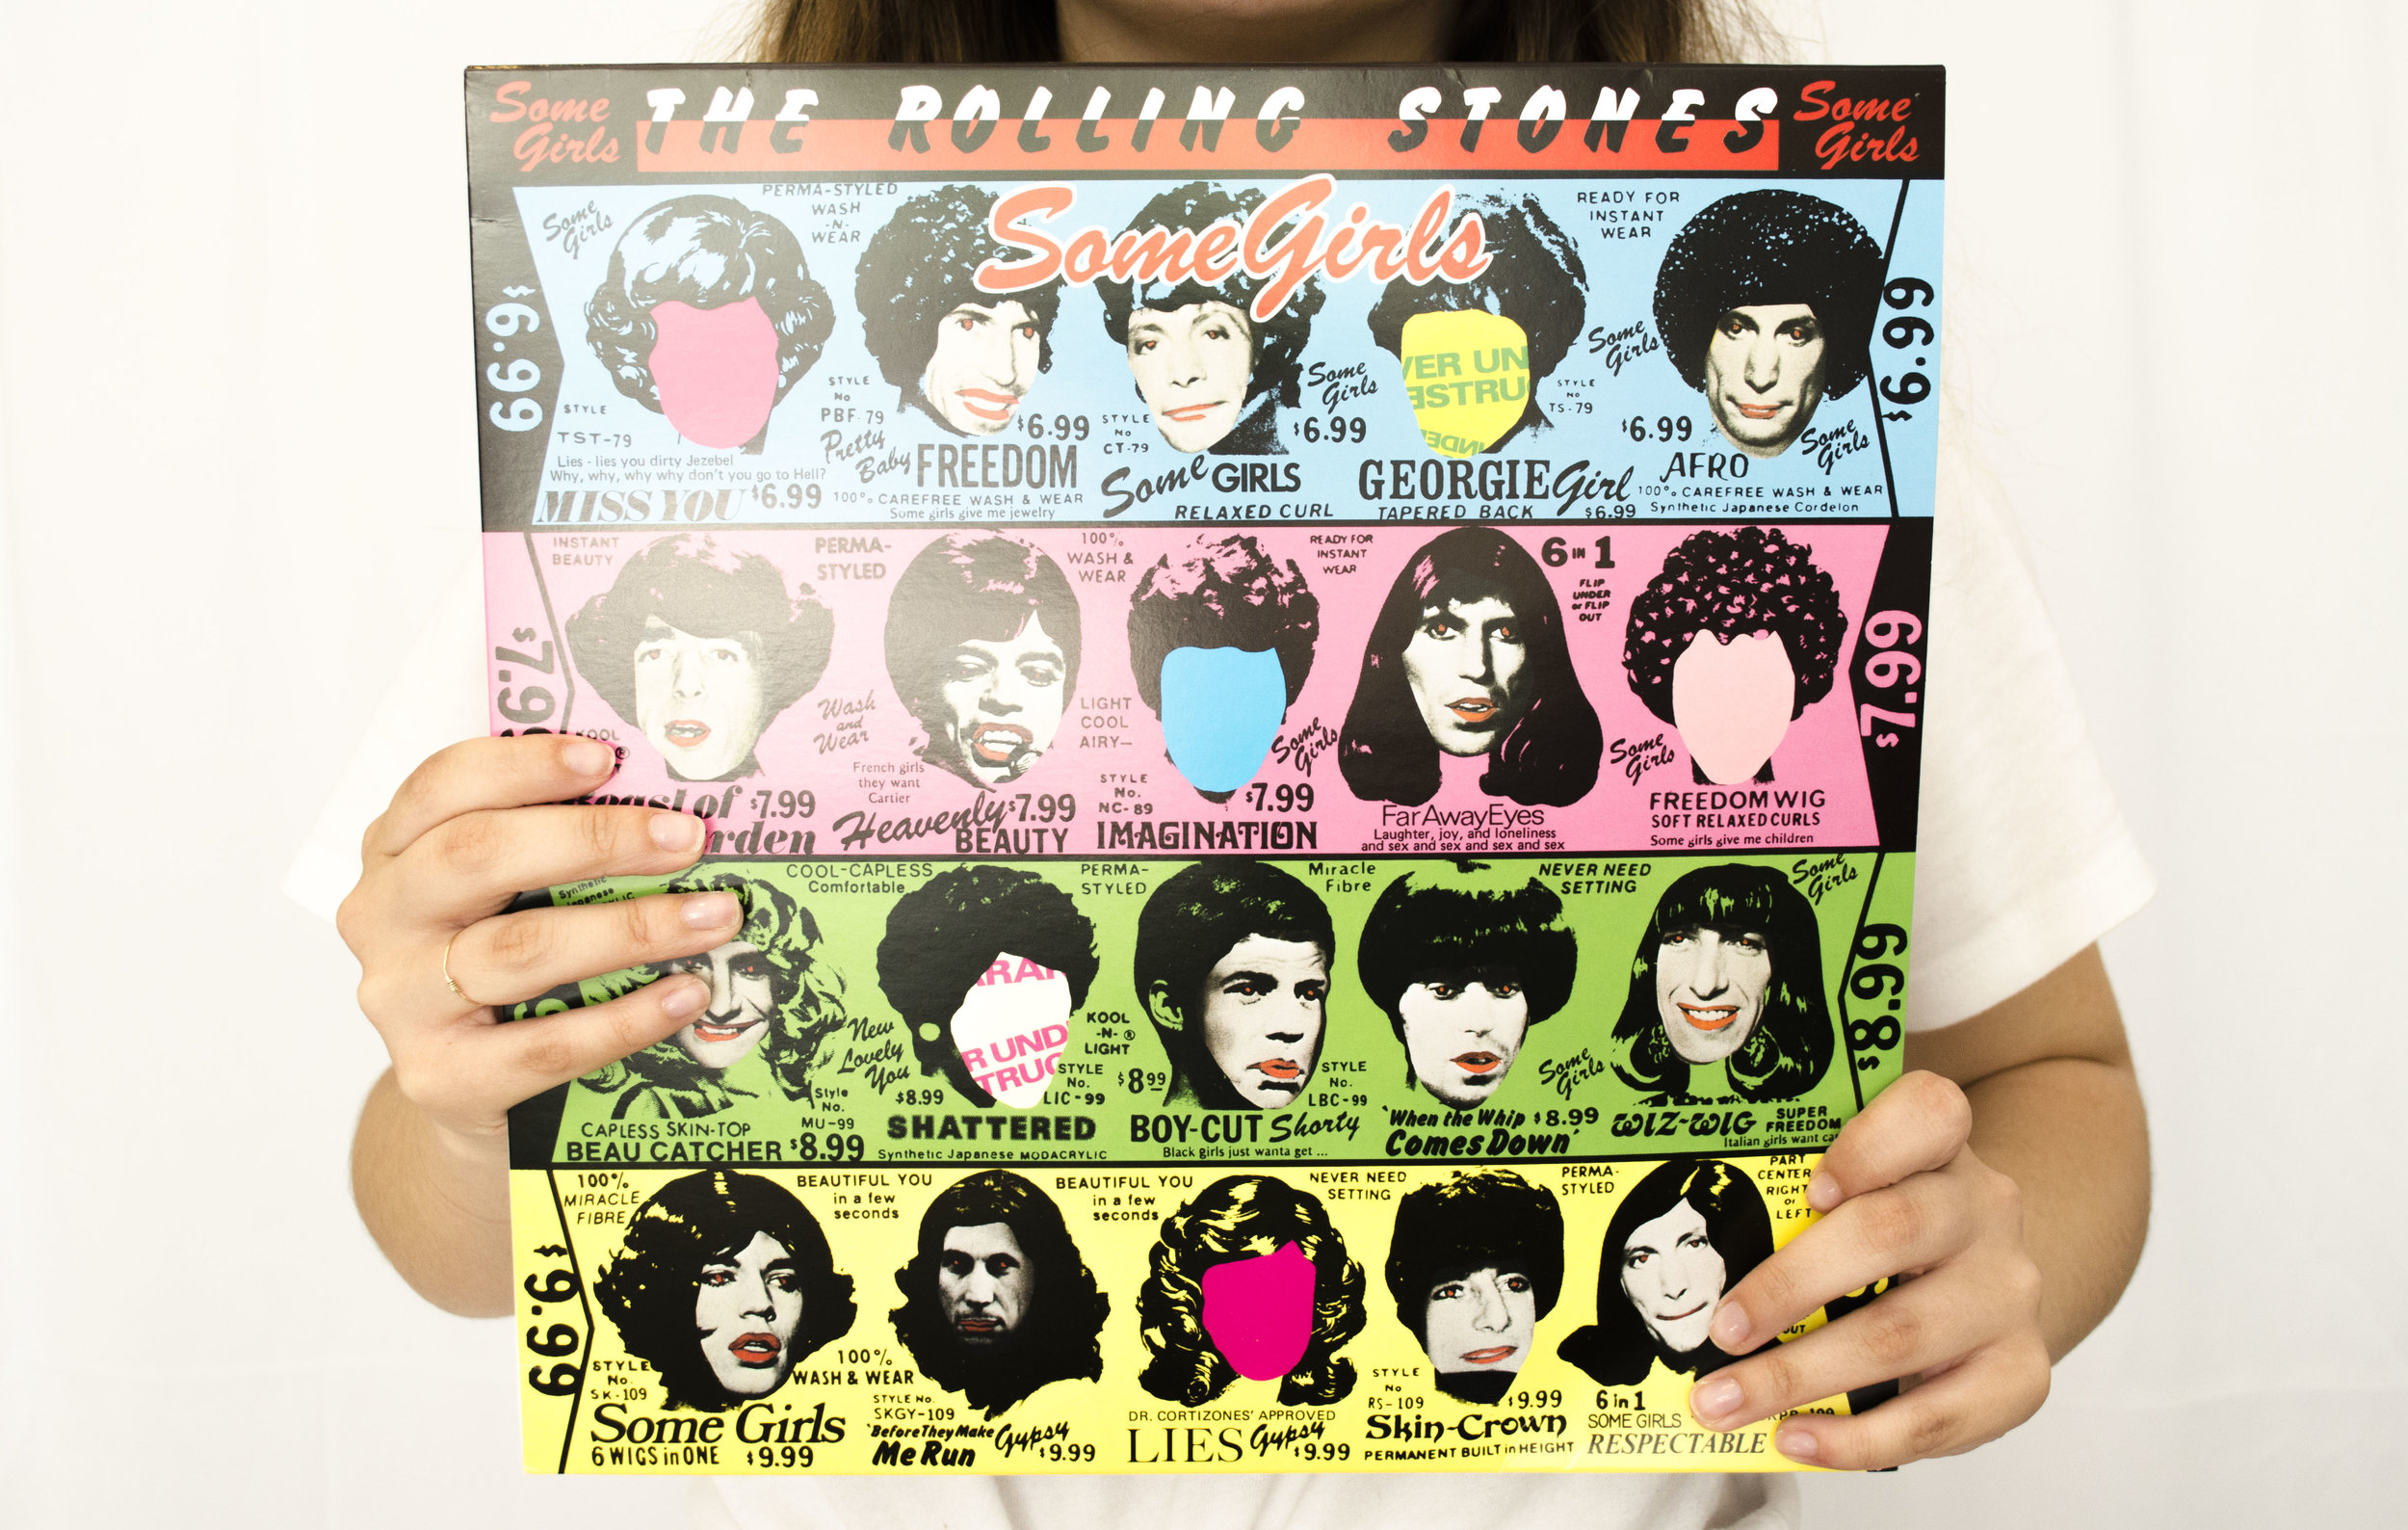 Some Girls - by The Rolling Stones